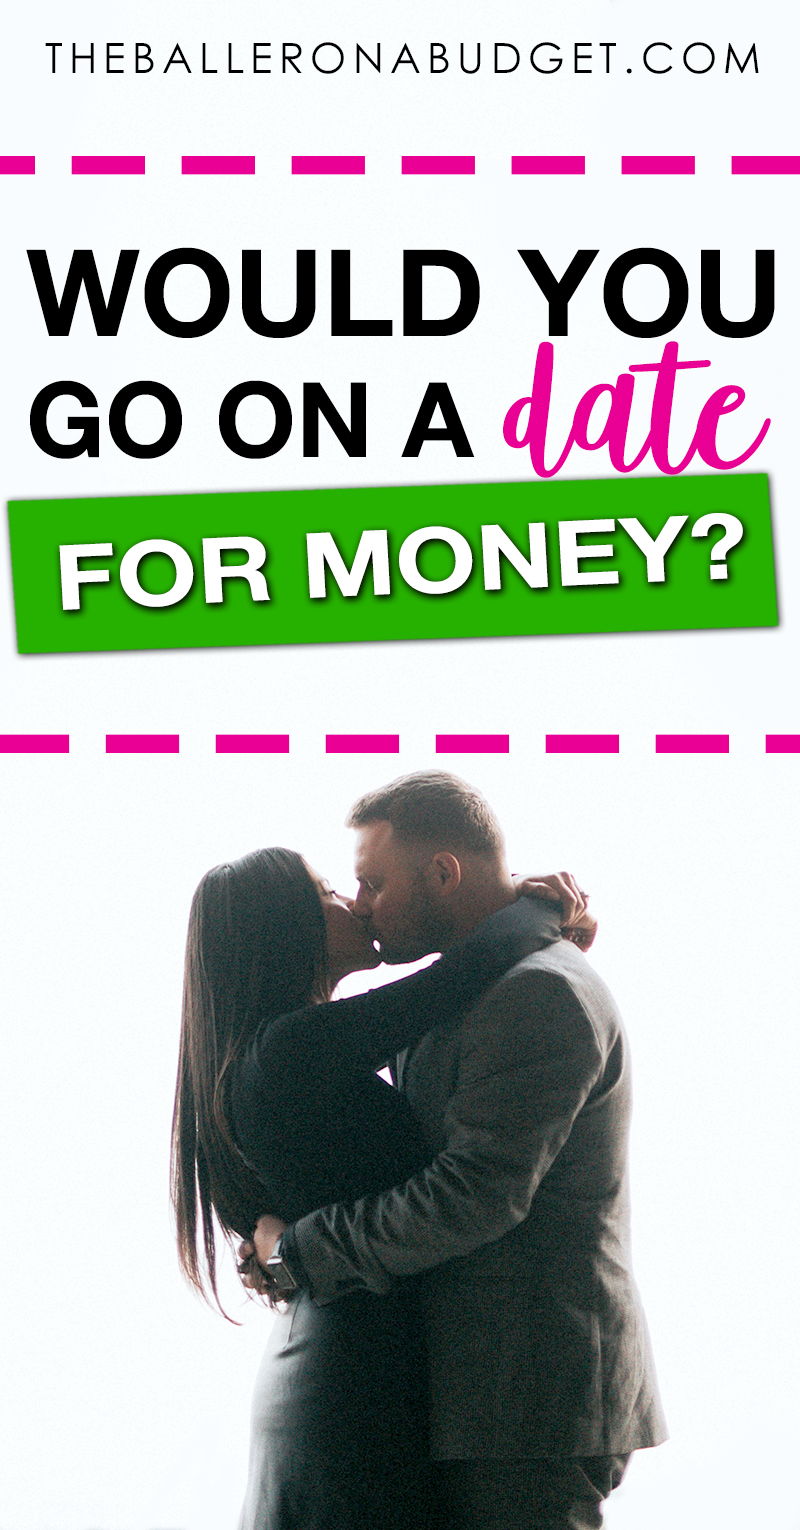 "Would you go on a date for money? No? Well, many college students are to help pay off their student loan debt. Being a ""sugar baby"" is quite common and not the scary or dangerous taboo you think it is. See for yourself! - www.theballeronabudget.com"